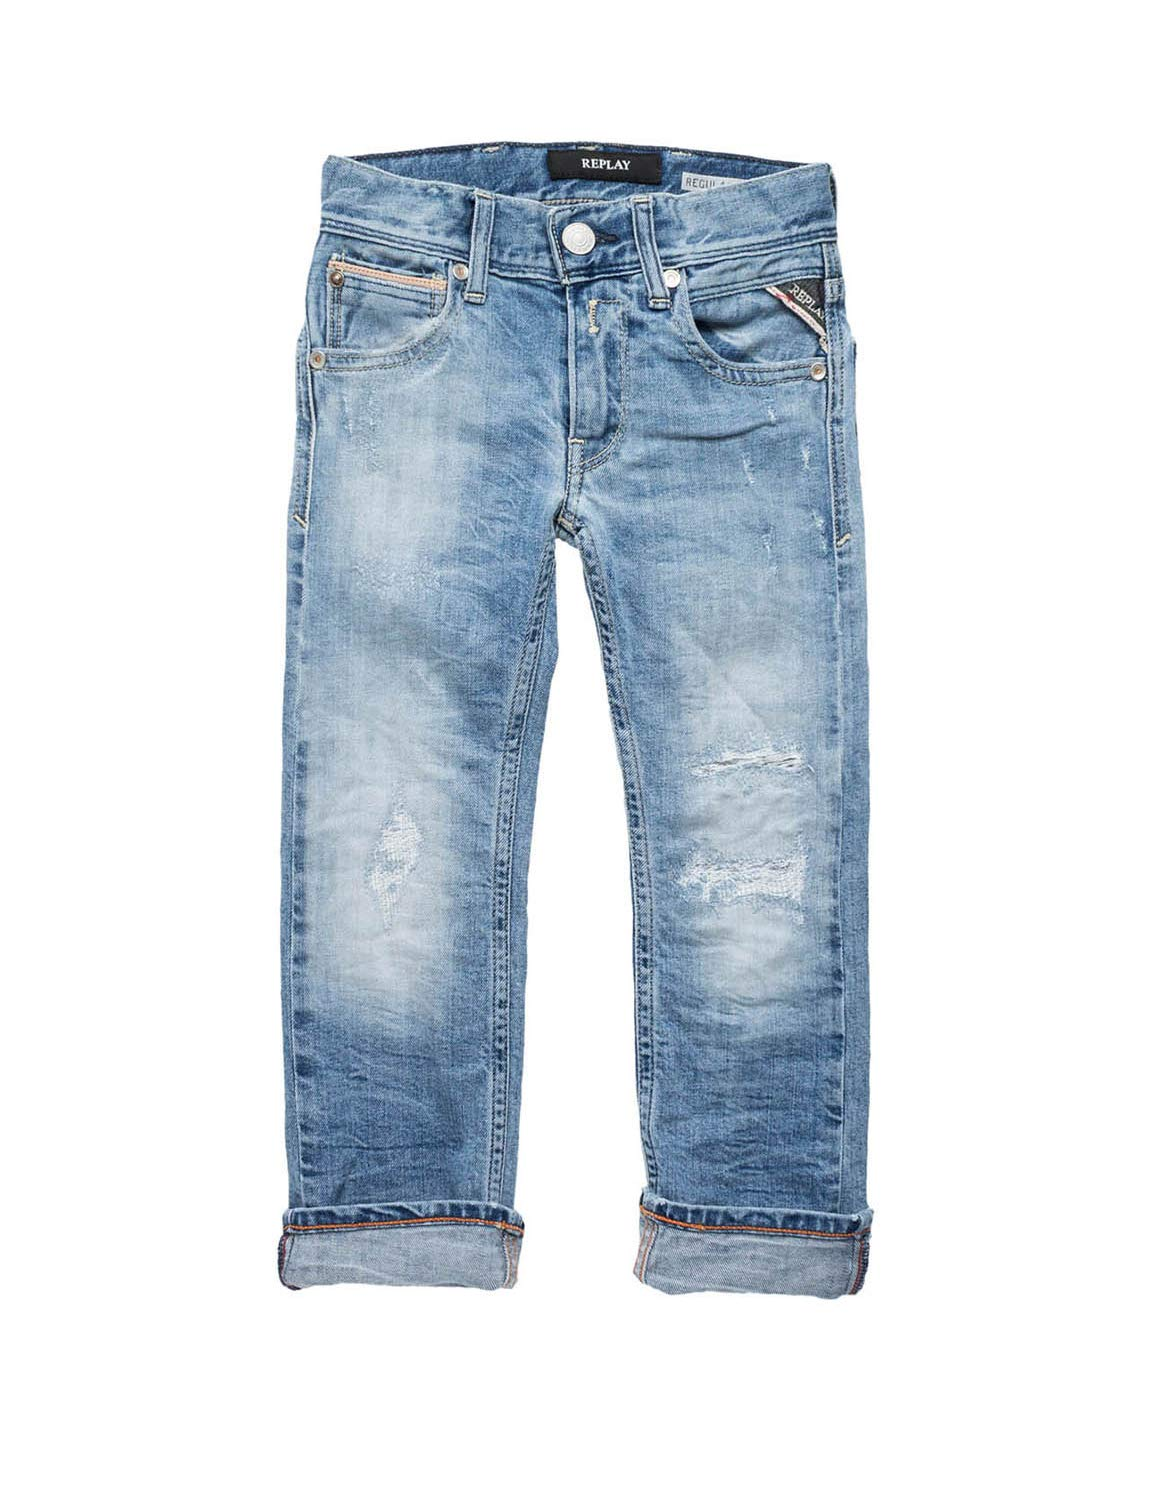 Replay Boys Kids Stretch Jeans with Rips Light Blue in Size 4 Years